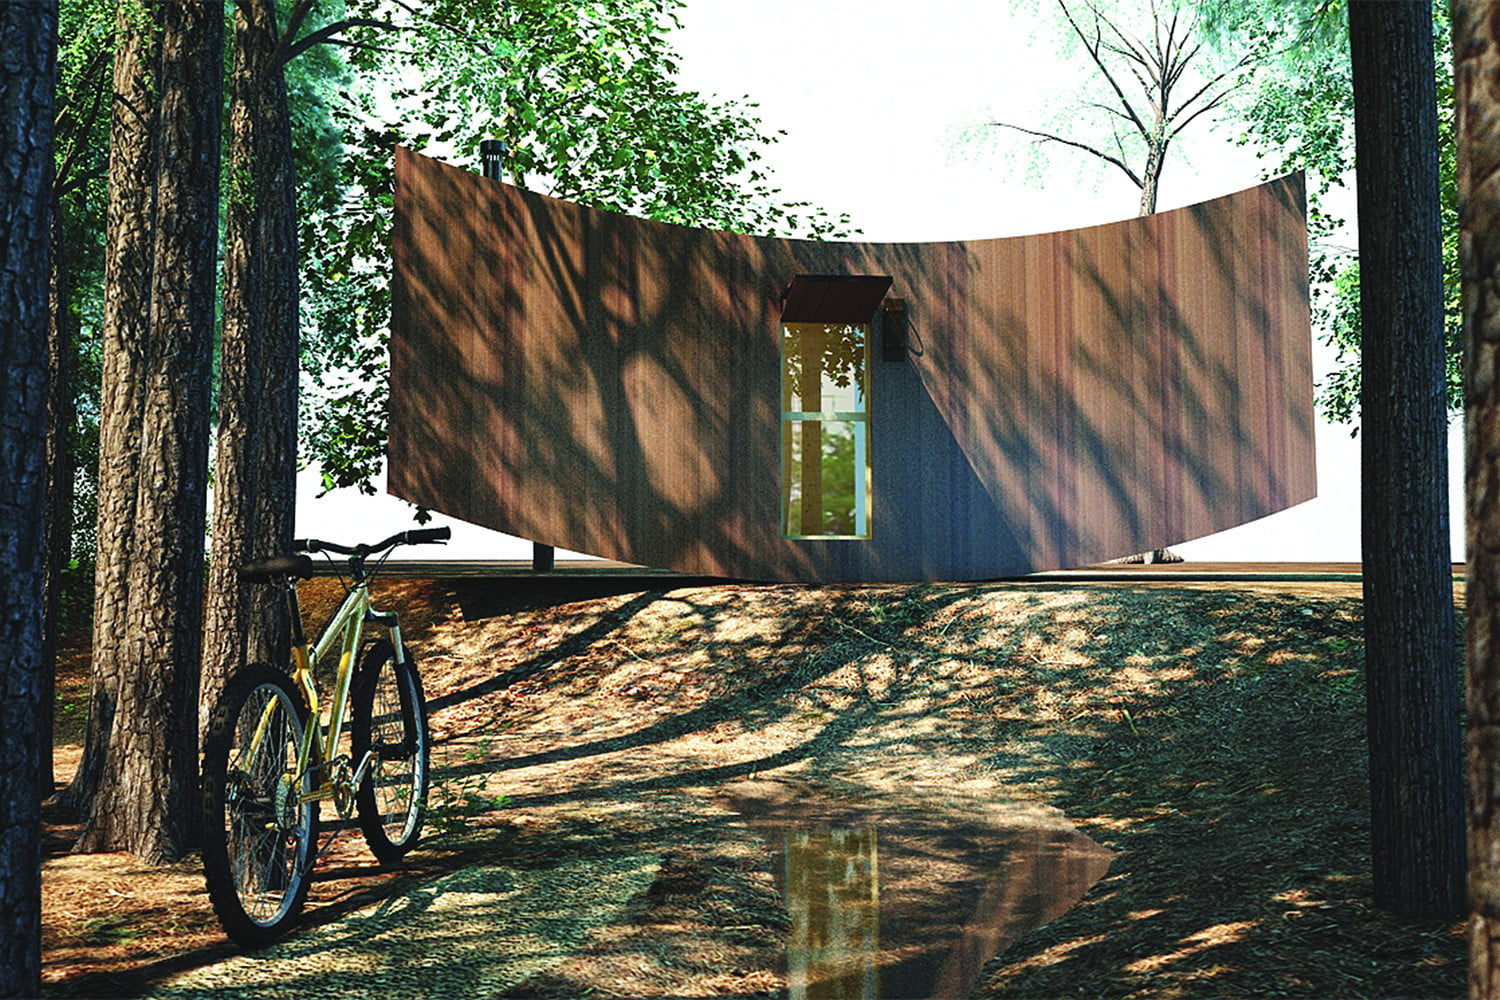 Award winning tiny houses are modular miracles digital for Small house design contest winners